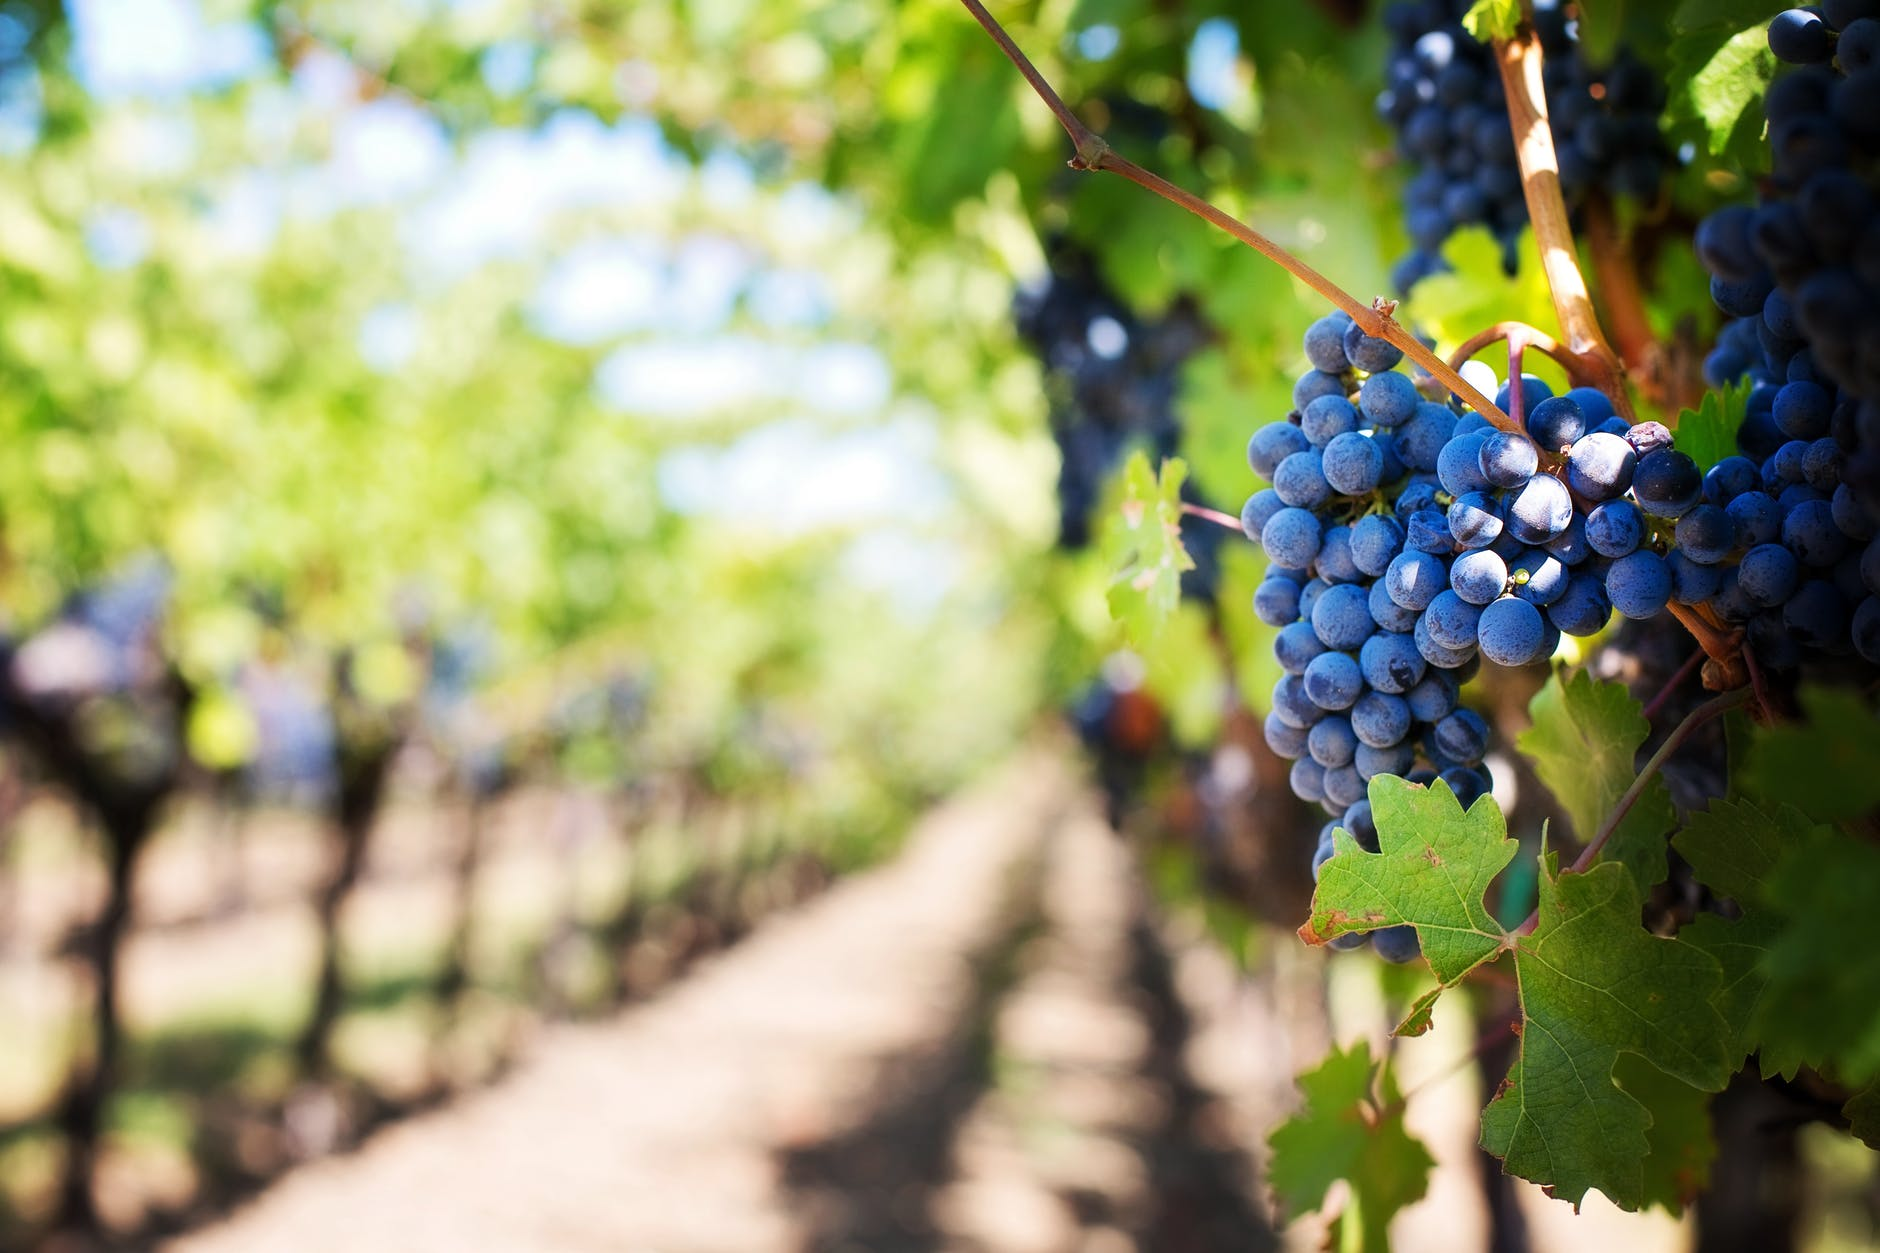 purple-grapes-vineyard-napa-valley-napa-vineyard-39511.jpeg